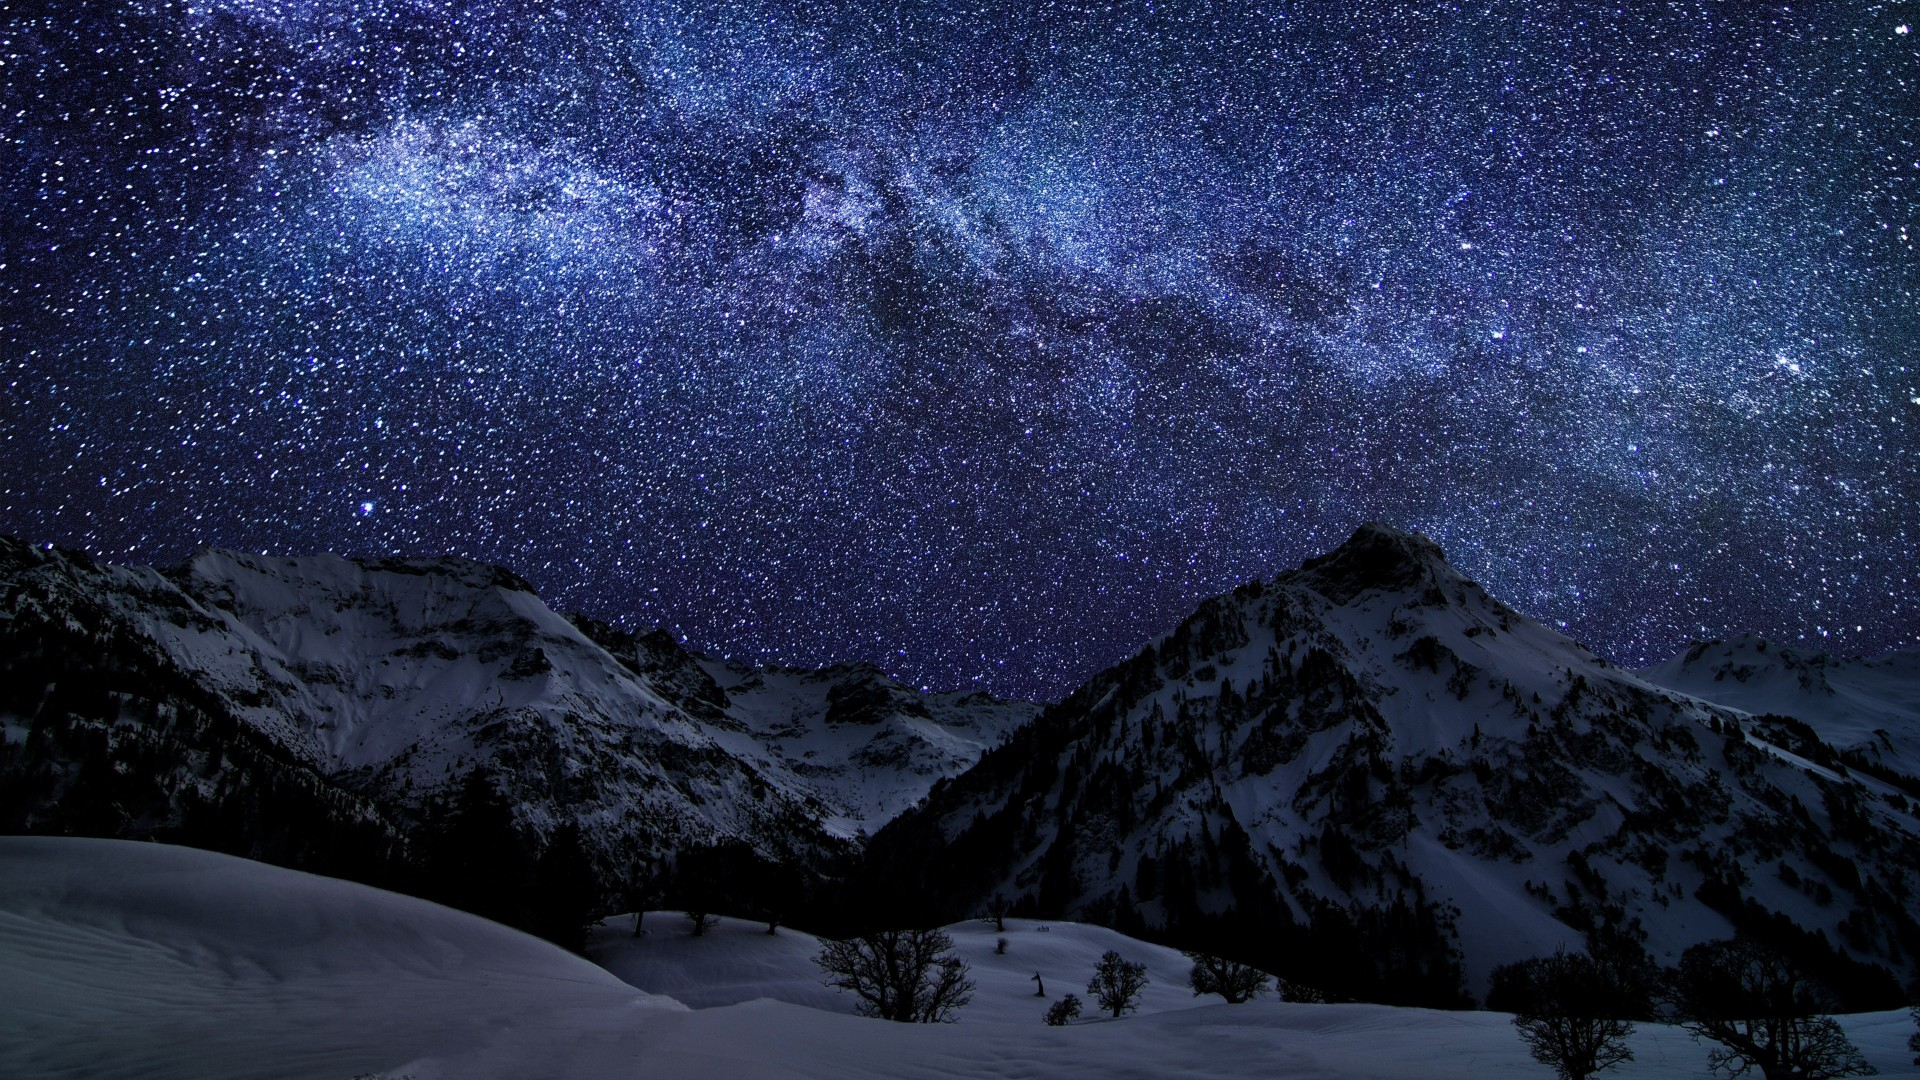 night sky, earth, sky, snow, stars, night, sea, mountain, cloud, light